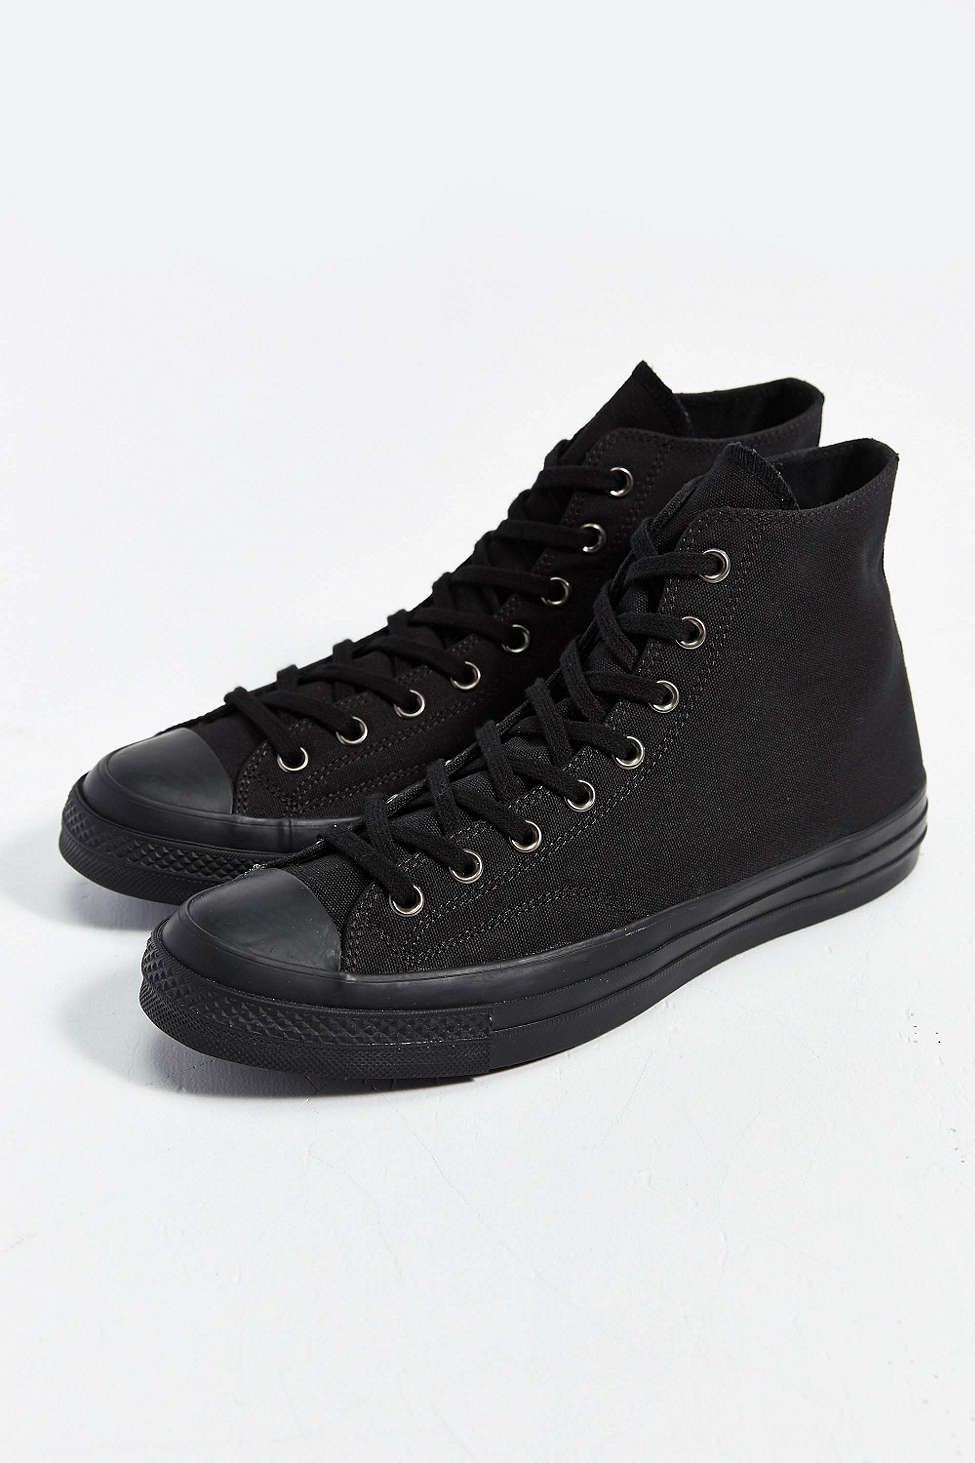 04e23a431e67 Converse Chuck Taylor All Star 70s Mono High-Top Sneaker in 2019 ...